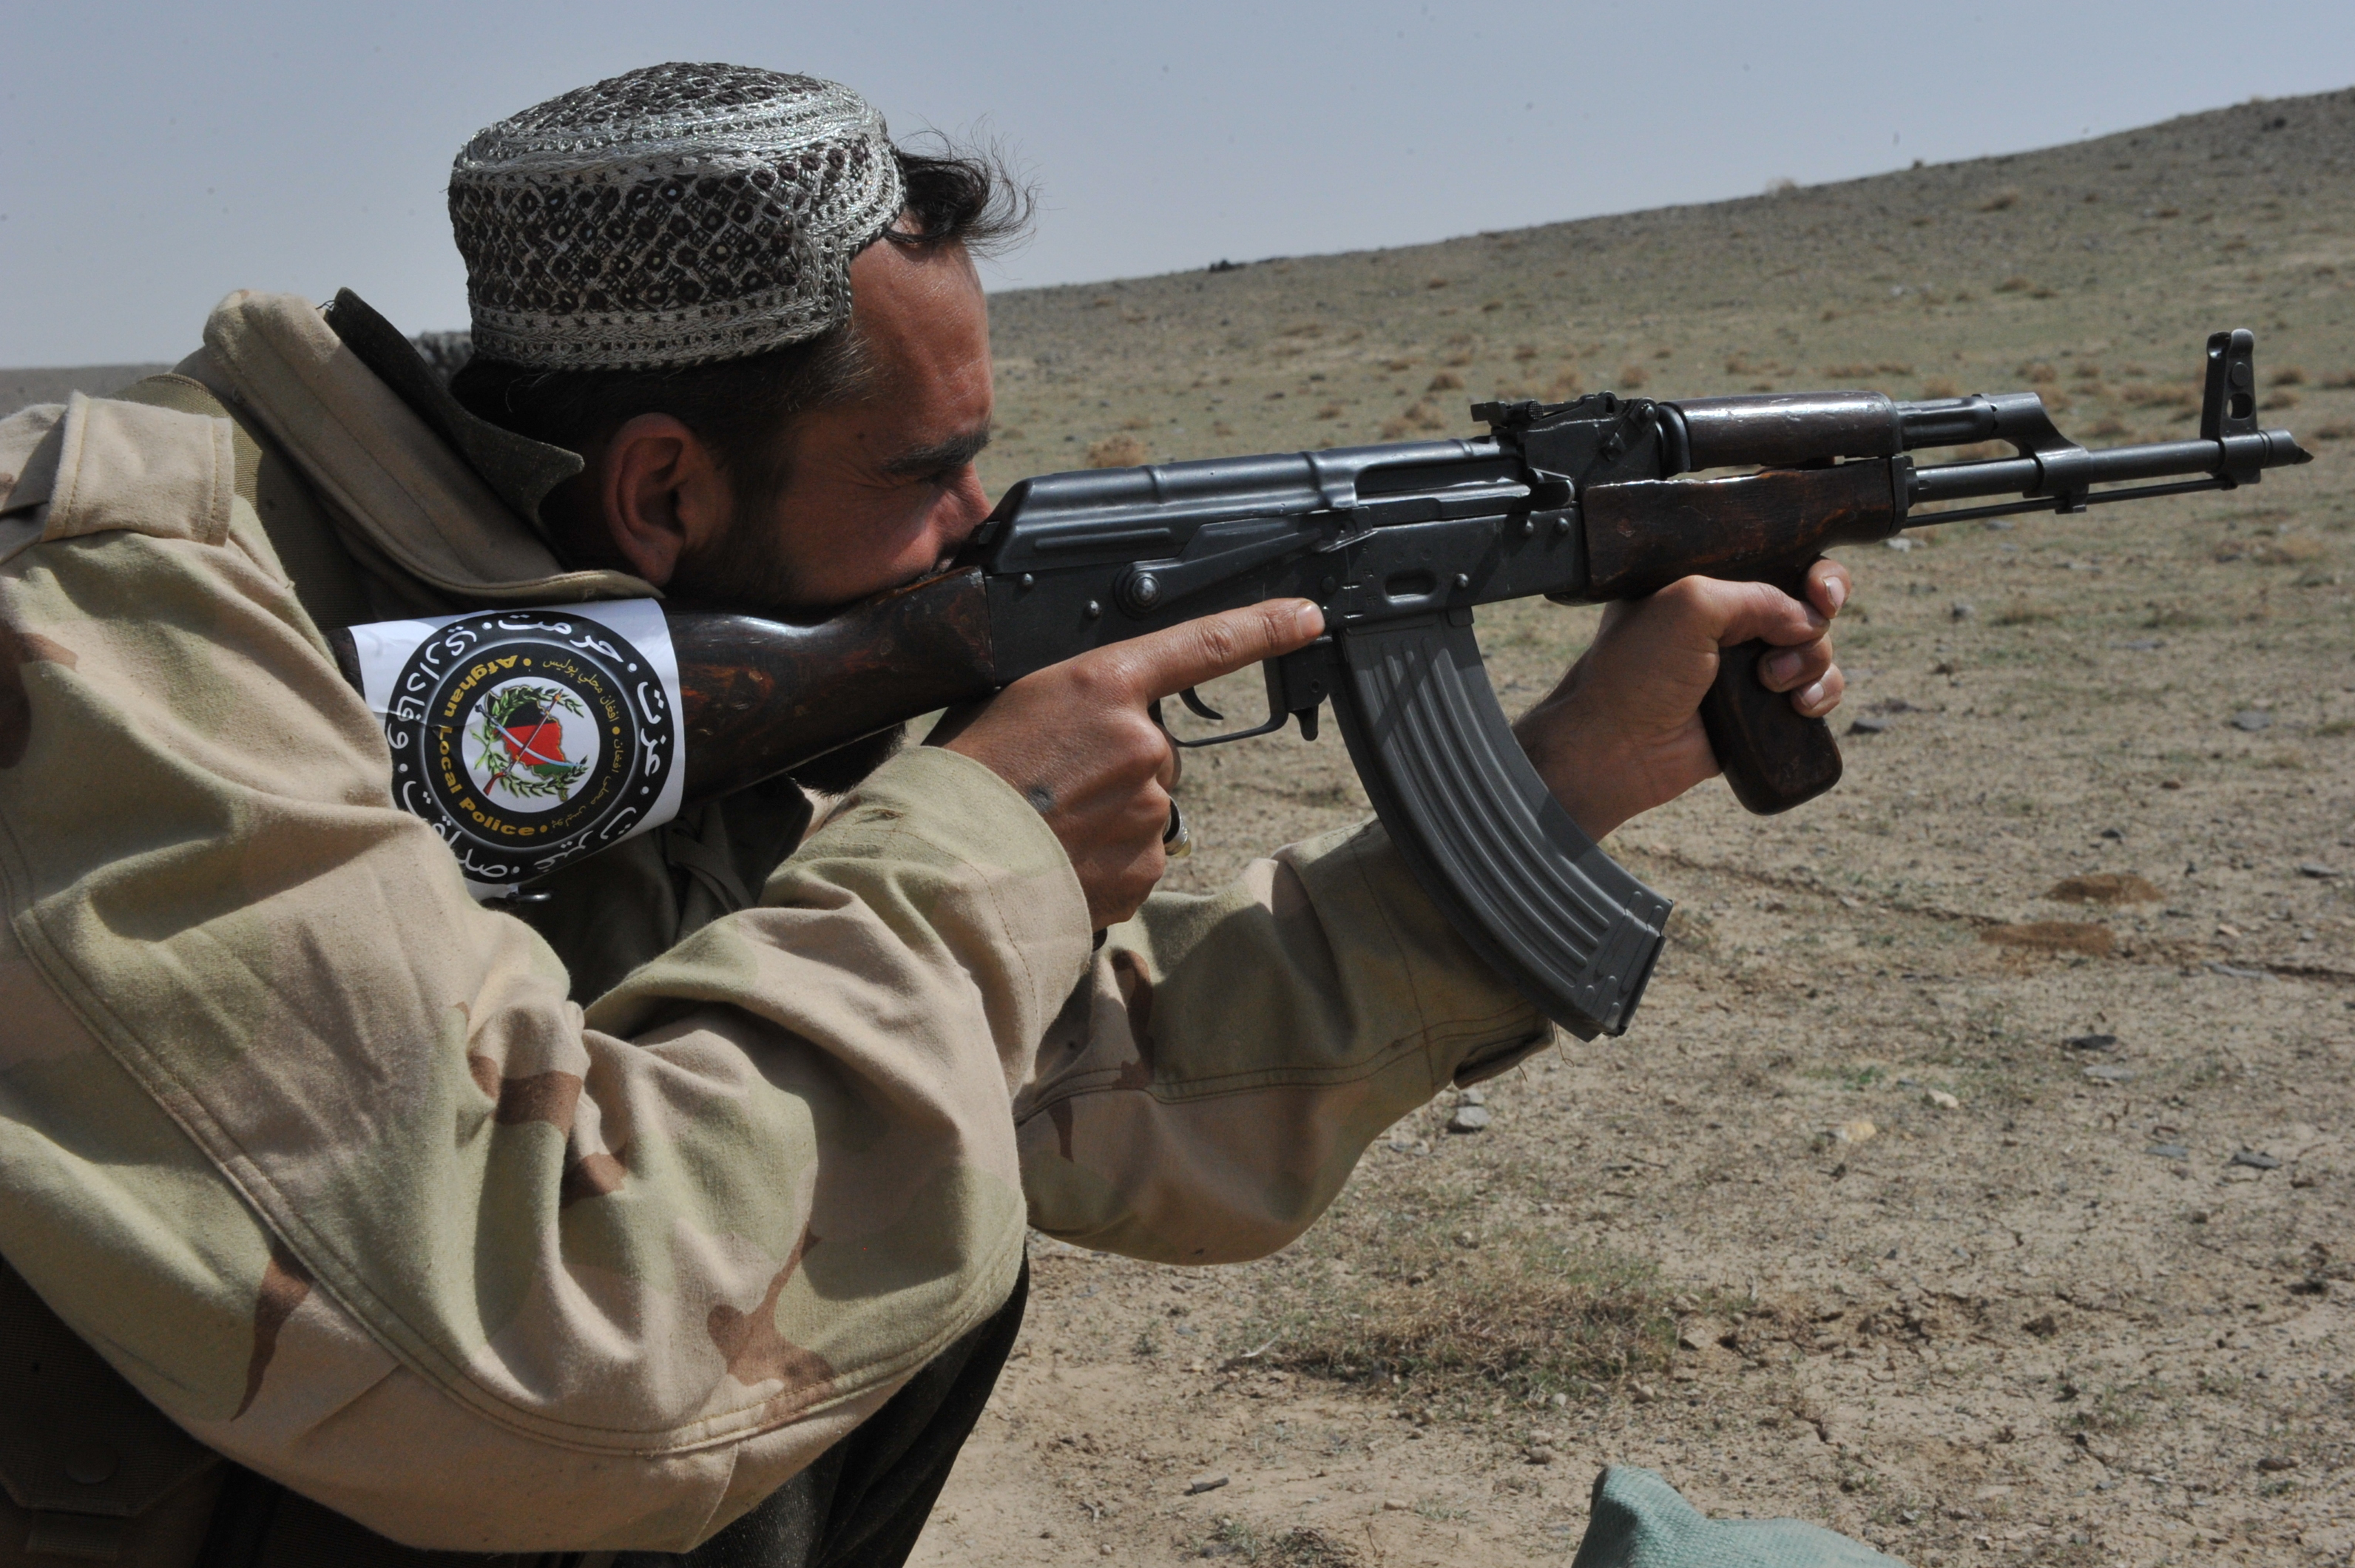 Pics photos police background police background police background - File An Afghan Local Police Recruit Fires An Ak 47 Rifle